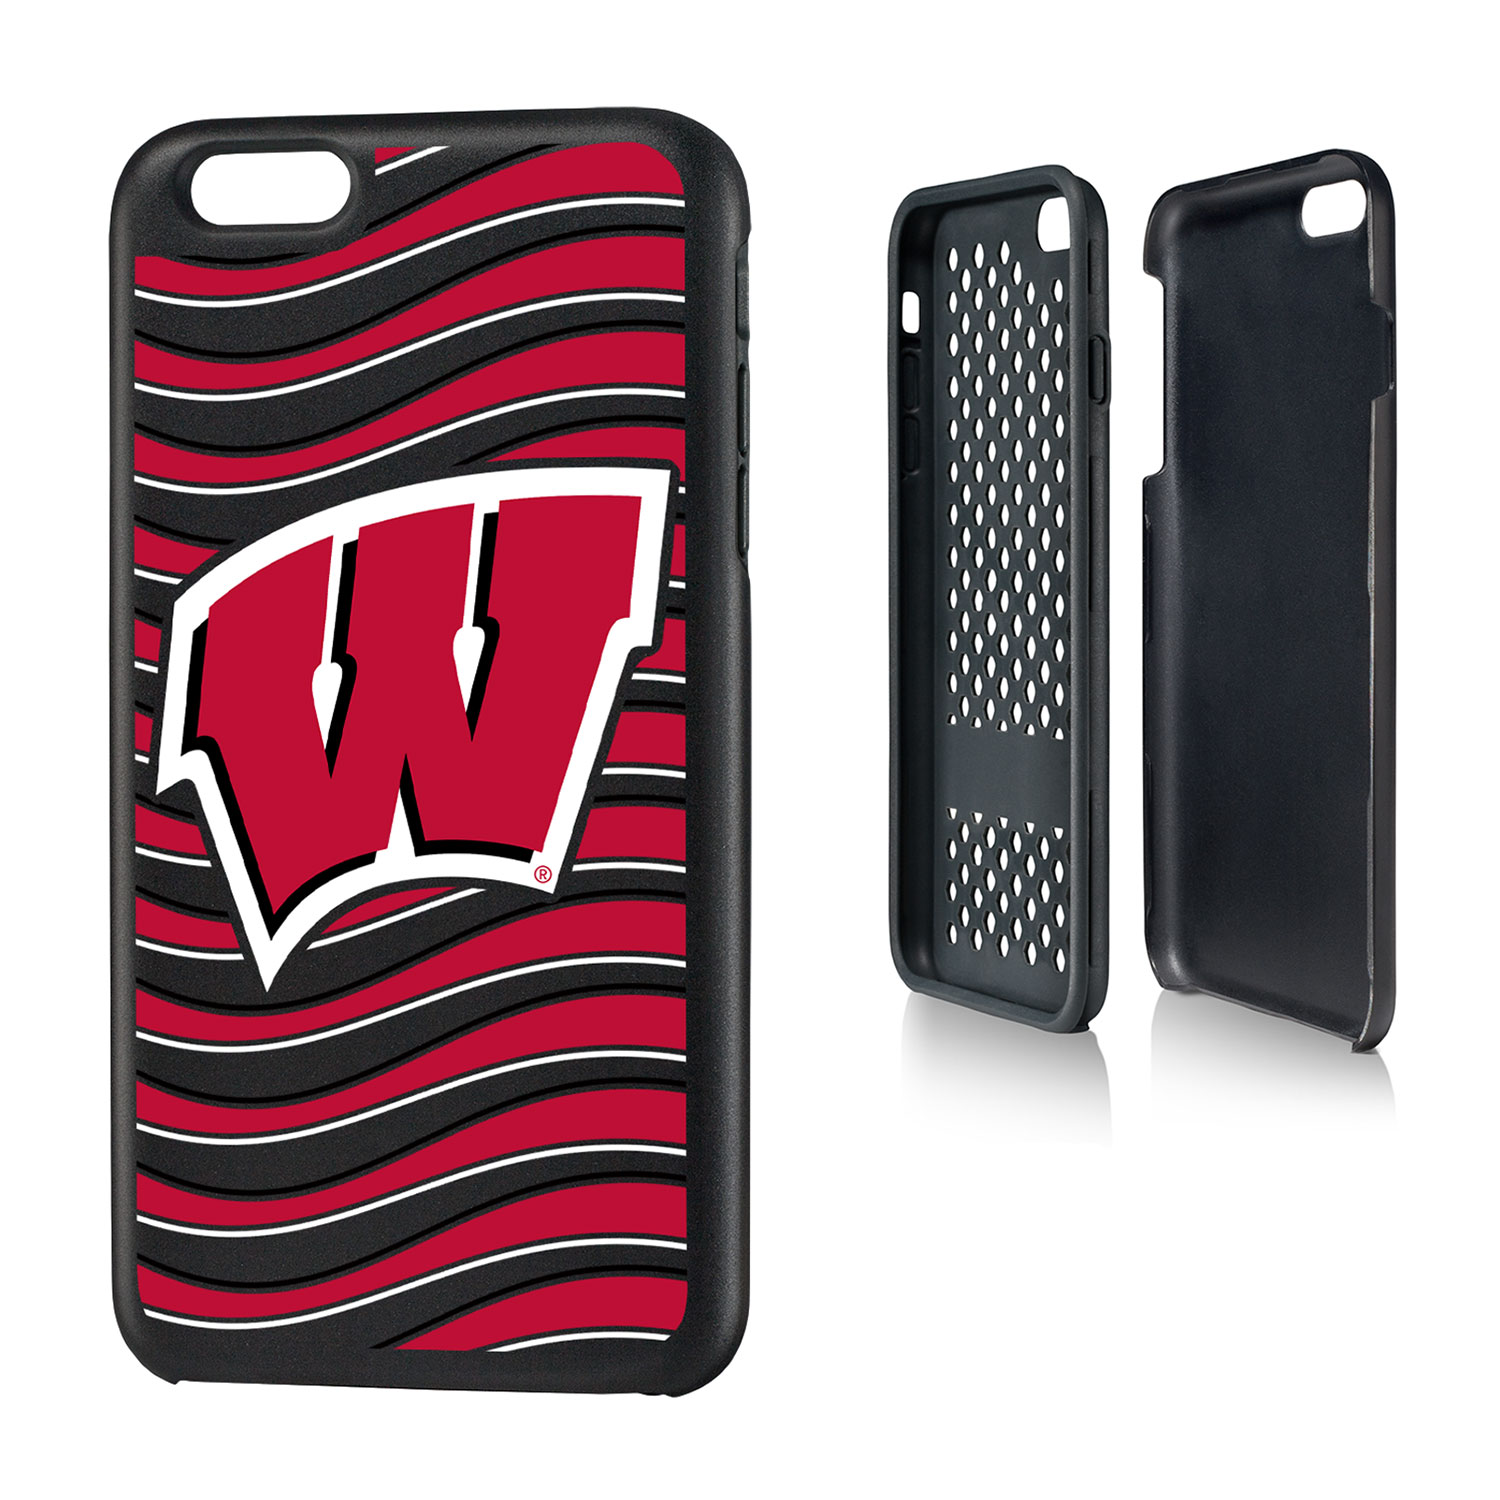 UW Wisconsin Badgers Wave Rugged Case for iPhone 6 Plus